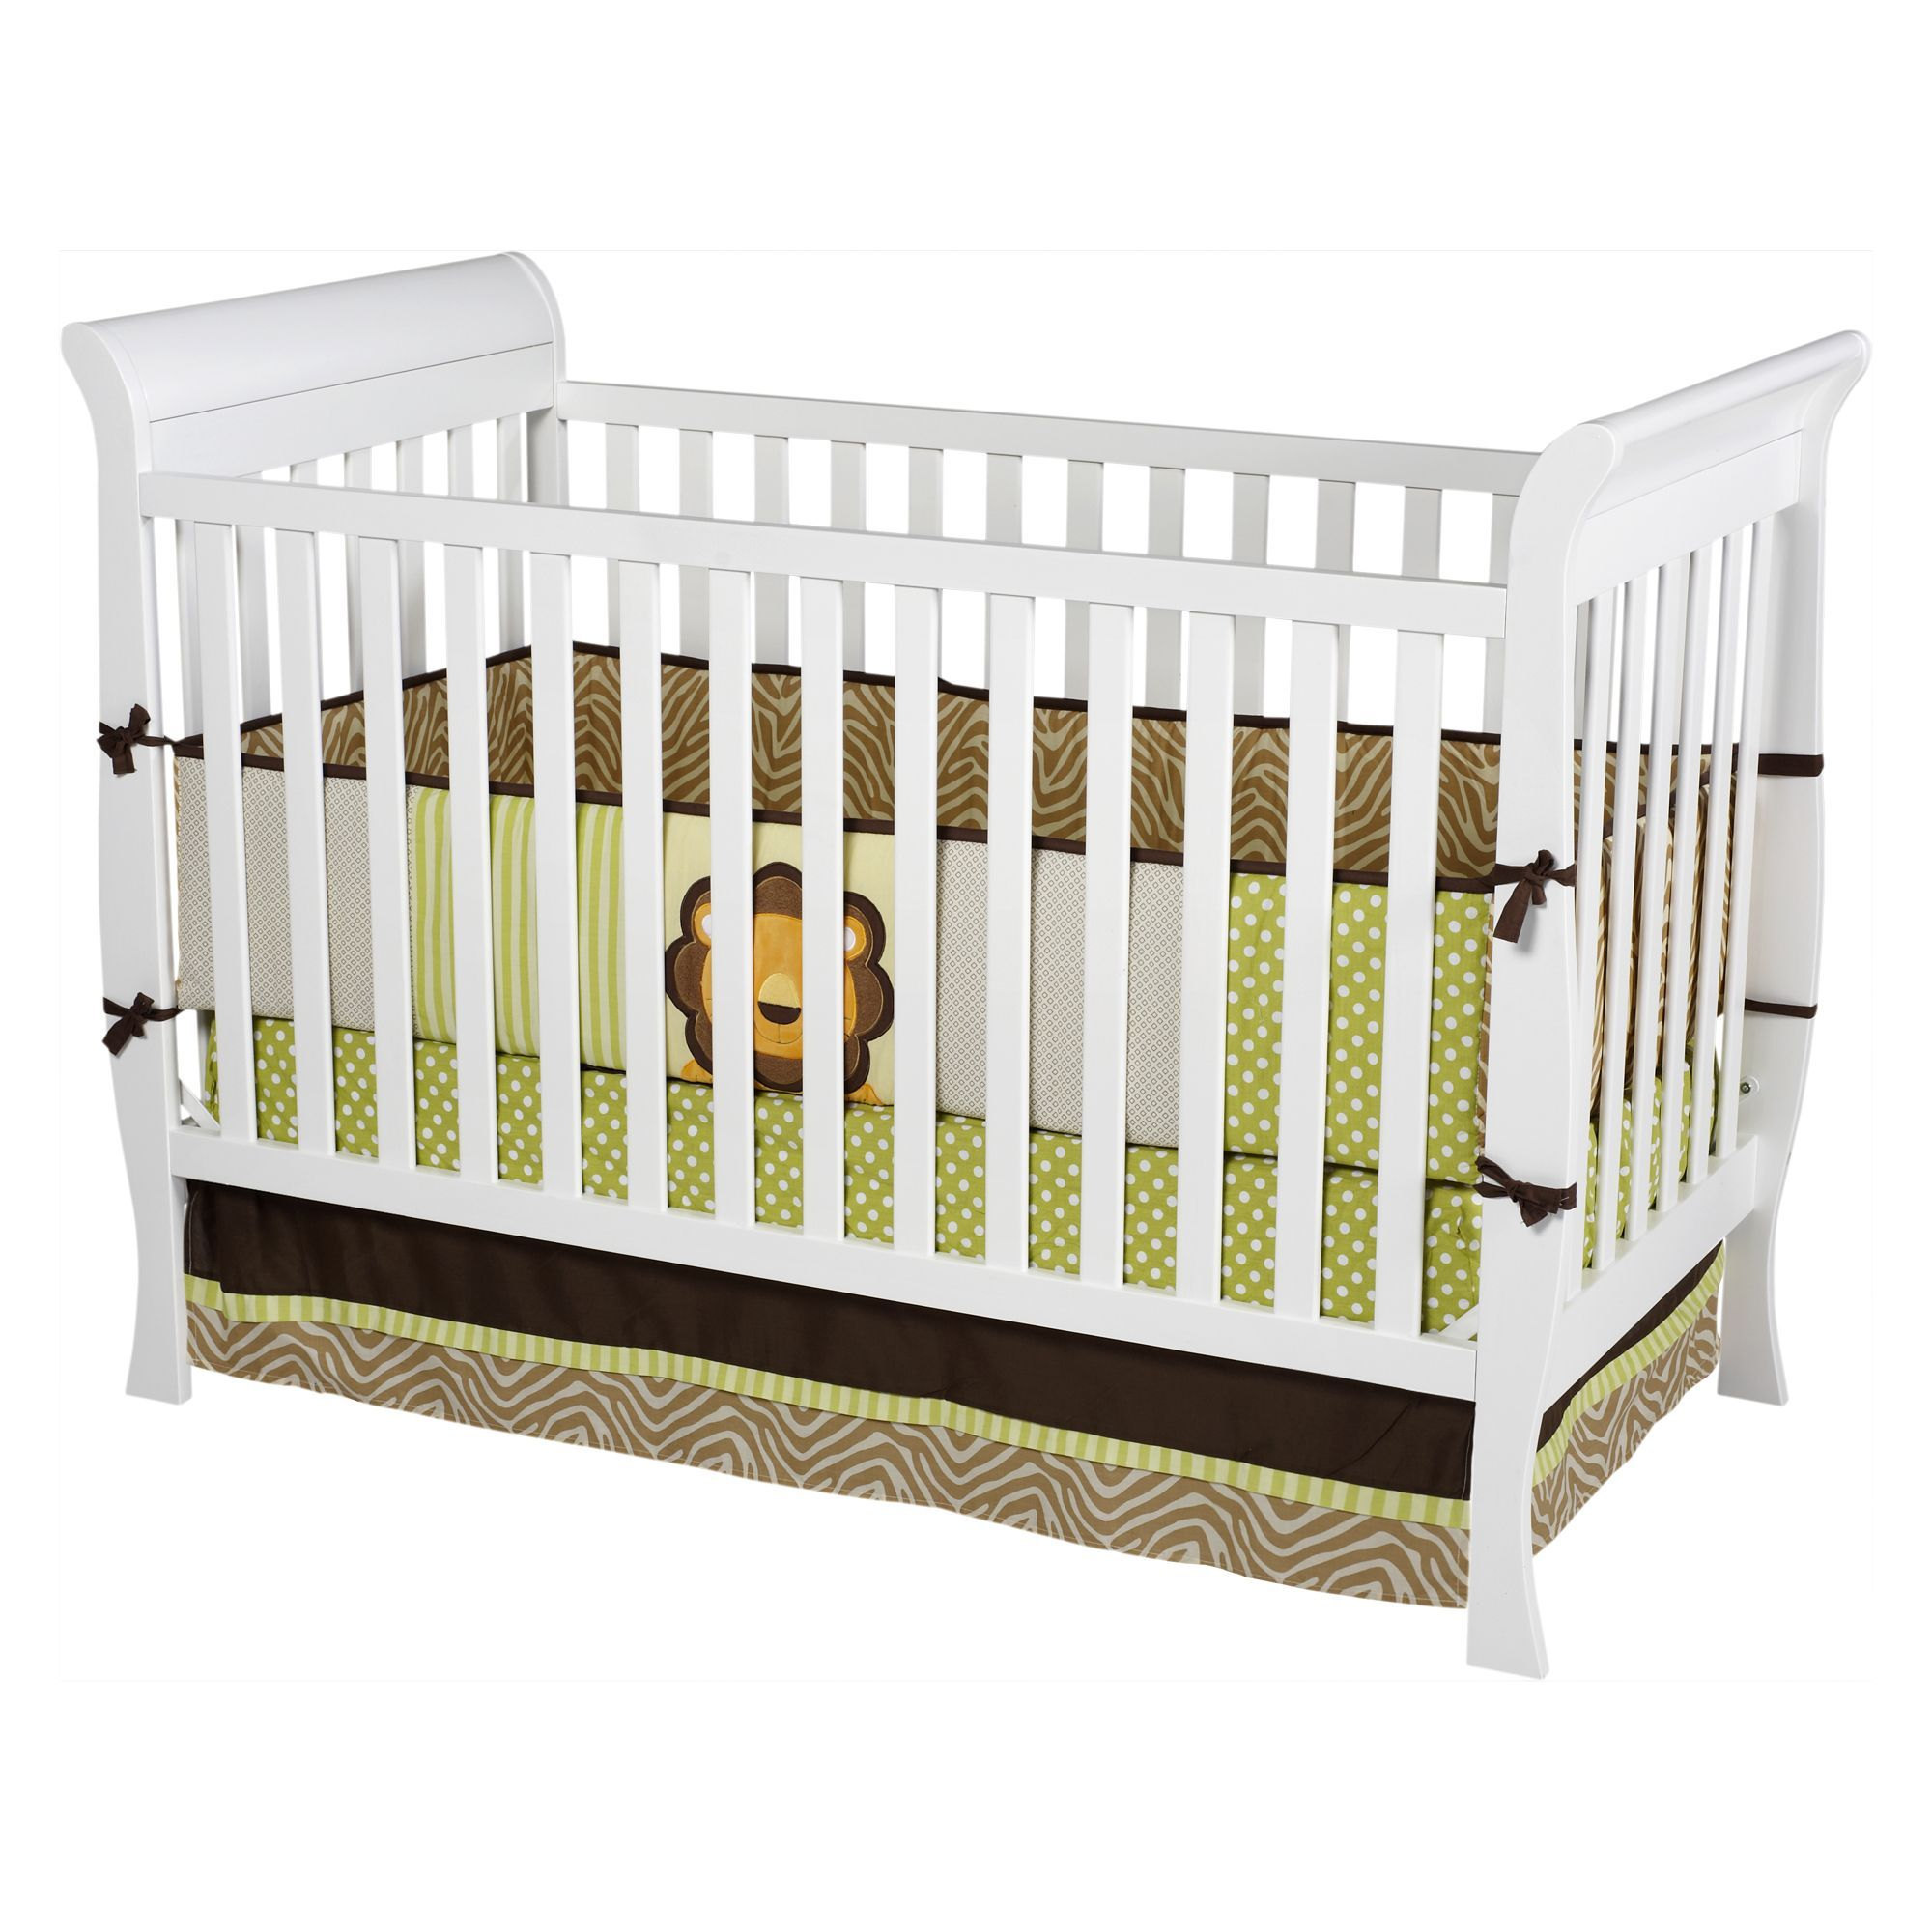 Burlington Baby Cribs White Color Design Baby Cribs Pinterest # Muebles No Toxicos